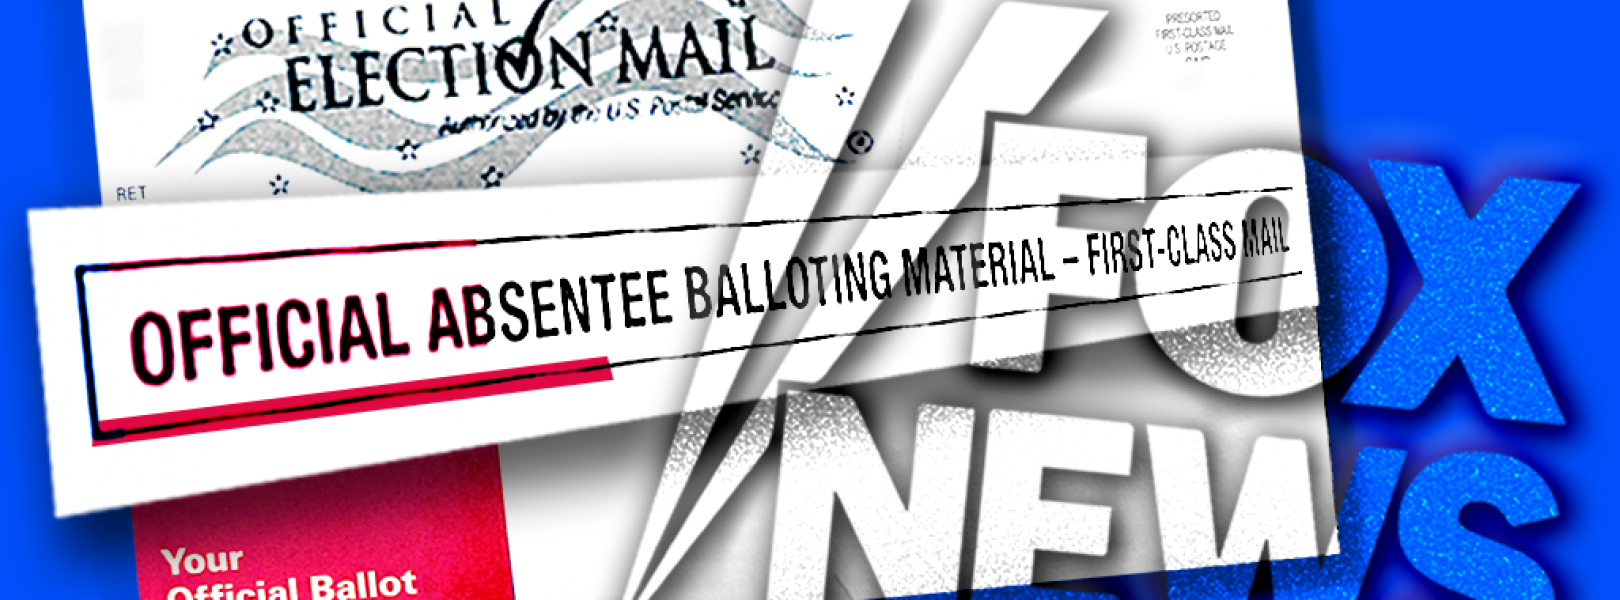 mail-in graphic